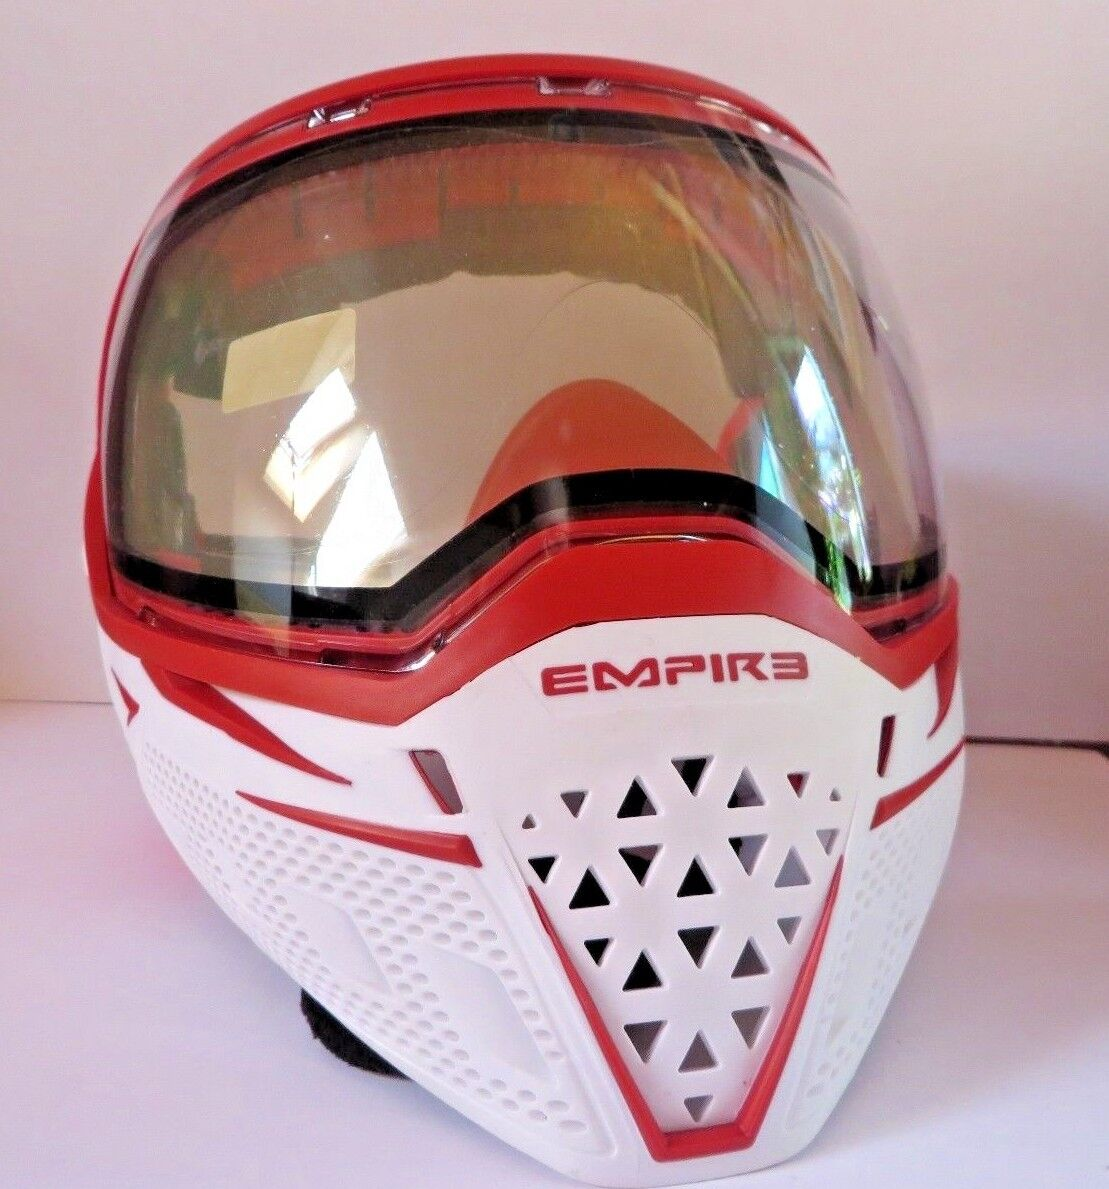 Empire EVS Paintball Goggle System Weiß ROT Weiß rot